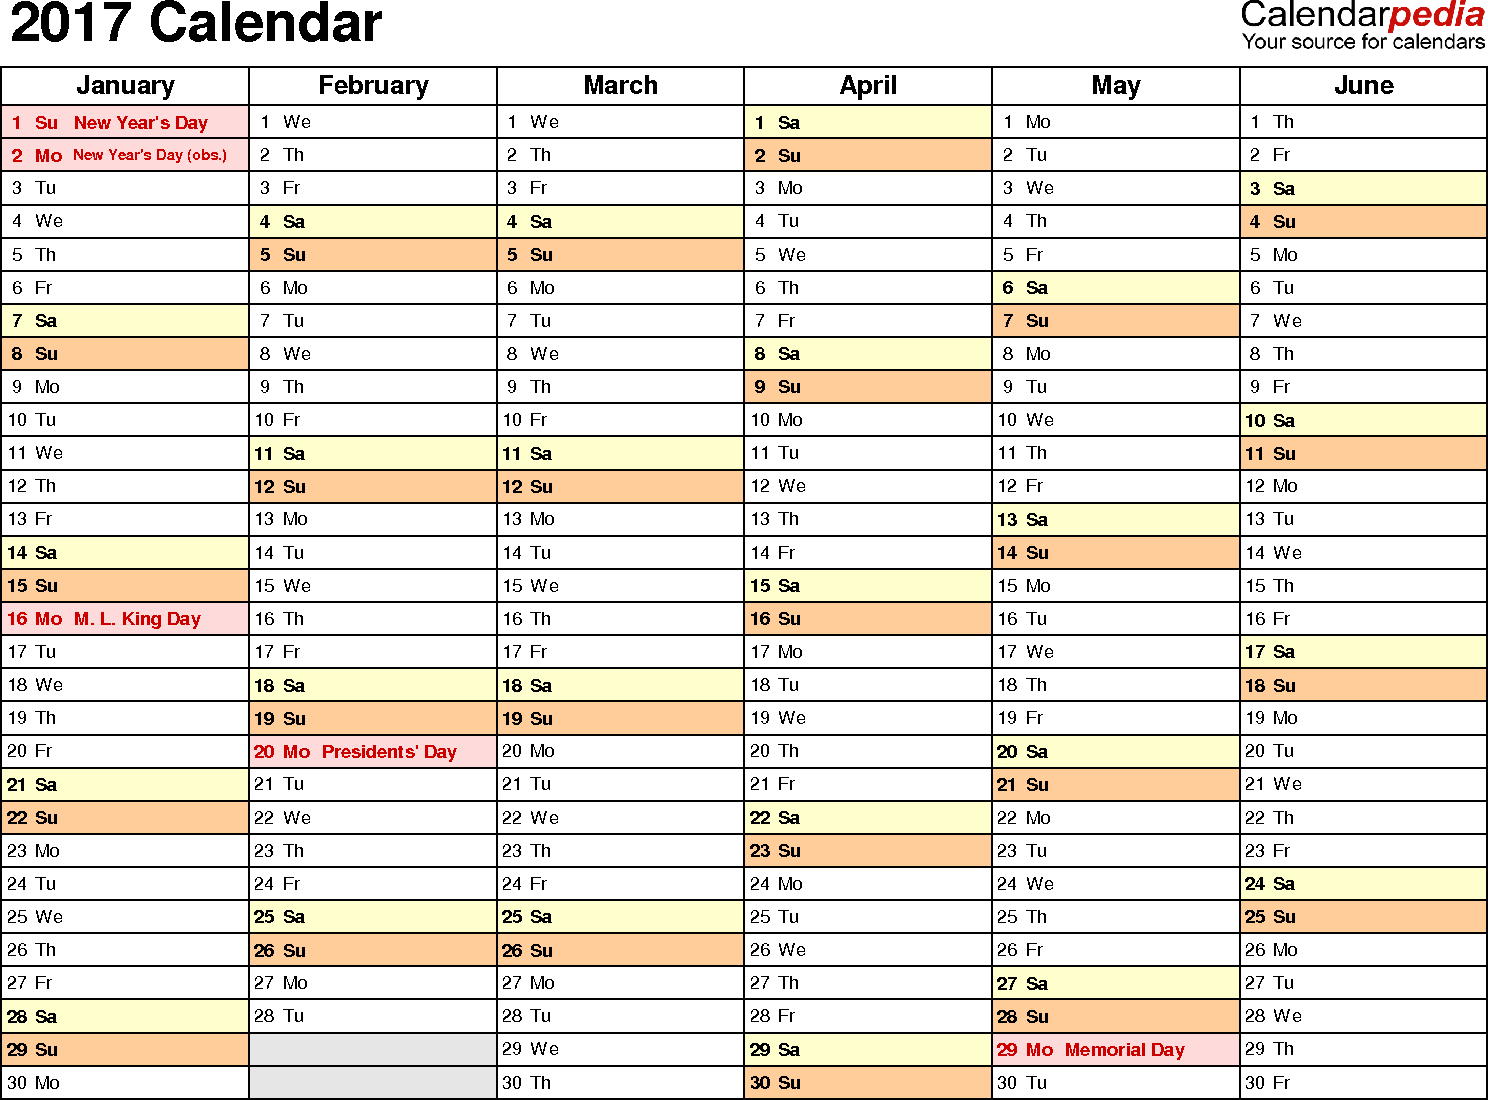 Ediblewildsus  Winning  Calendar  Download  Free Printable Excel Templates Xls With Outstanding Template   Calendar For Excel Months Horizontally  Pages Landscape Orientation With Astonishing How To Convert Pdf To Excel Sheet Also Excel Credit Union In Addition Excel Highlight Every Other Row And How To Rotate Cells In Excel As Well As How To Hide Cells In Excel Additionally Amortization Schedule In Excel From Calendarpediacom With Ediblewildsus  Outstanding  Calendar  Download  Free Printable Excel Templates Xls With Astonishing Template   Calendar For Excel Months Horizontally  Pages Landscape Orientation And Winning How To Convert Pdf To Excel Sheet Also Excel Credit Union In Addition Excel Highlight Every Other Row From Calendarpediacom